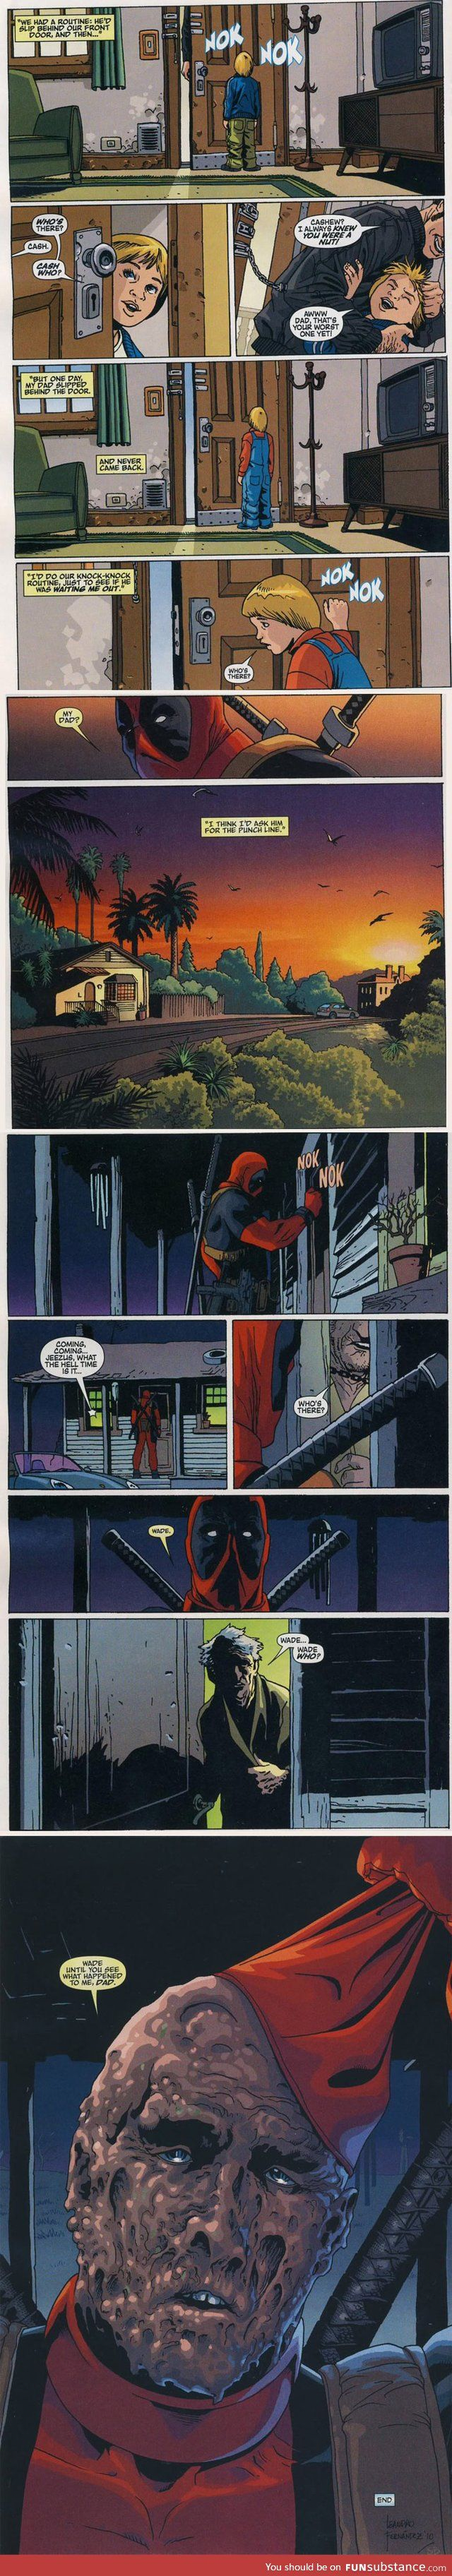 Don't give me such major feels over deadpool. Wade (Wilson) deadpool